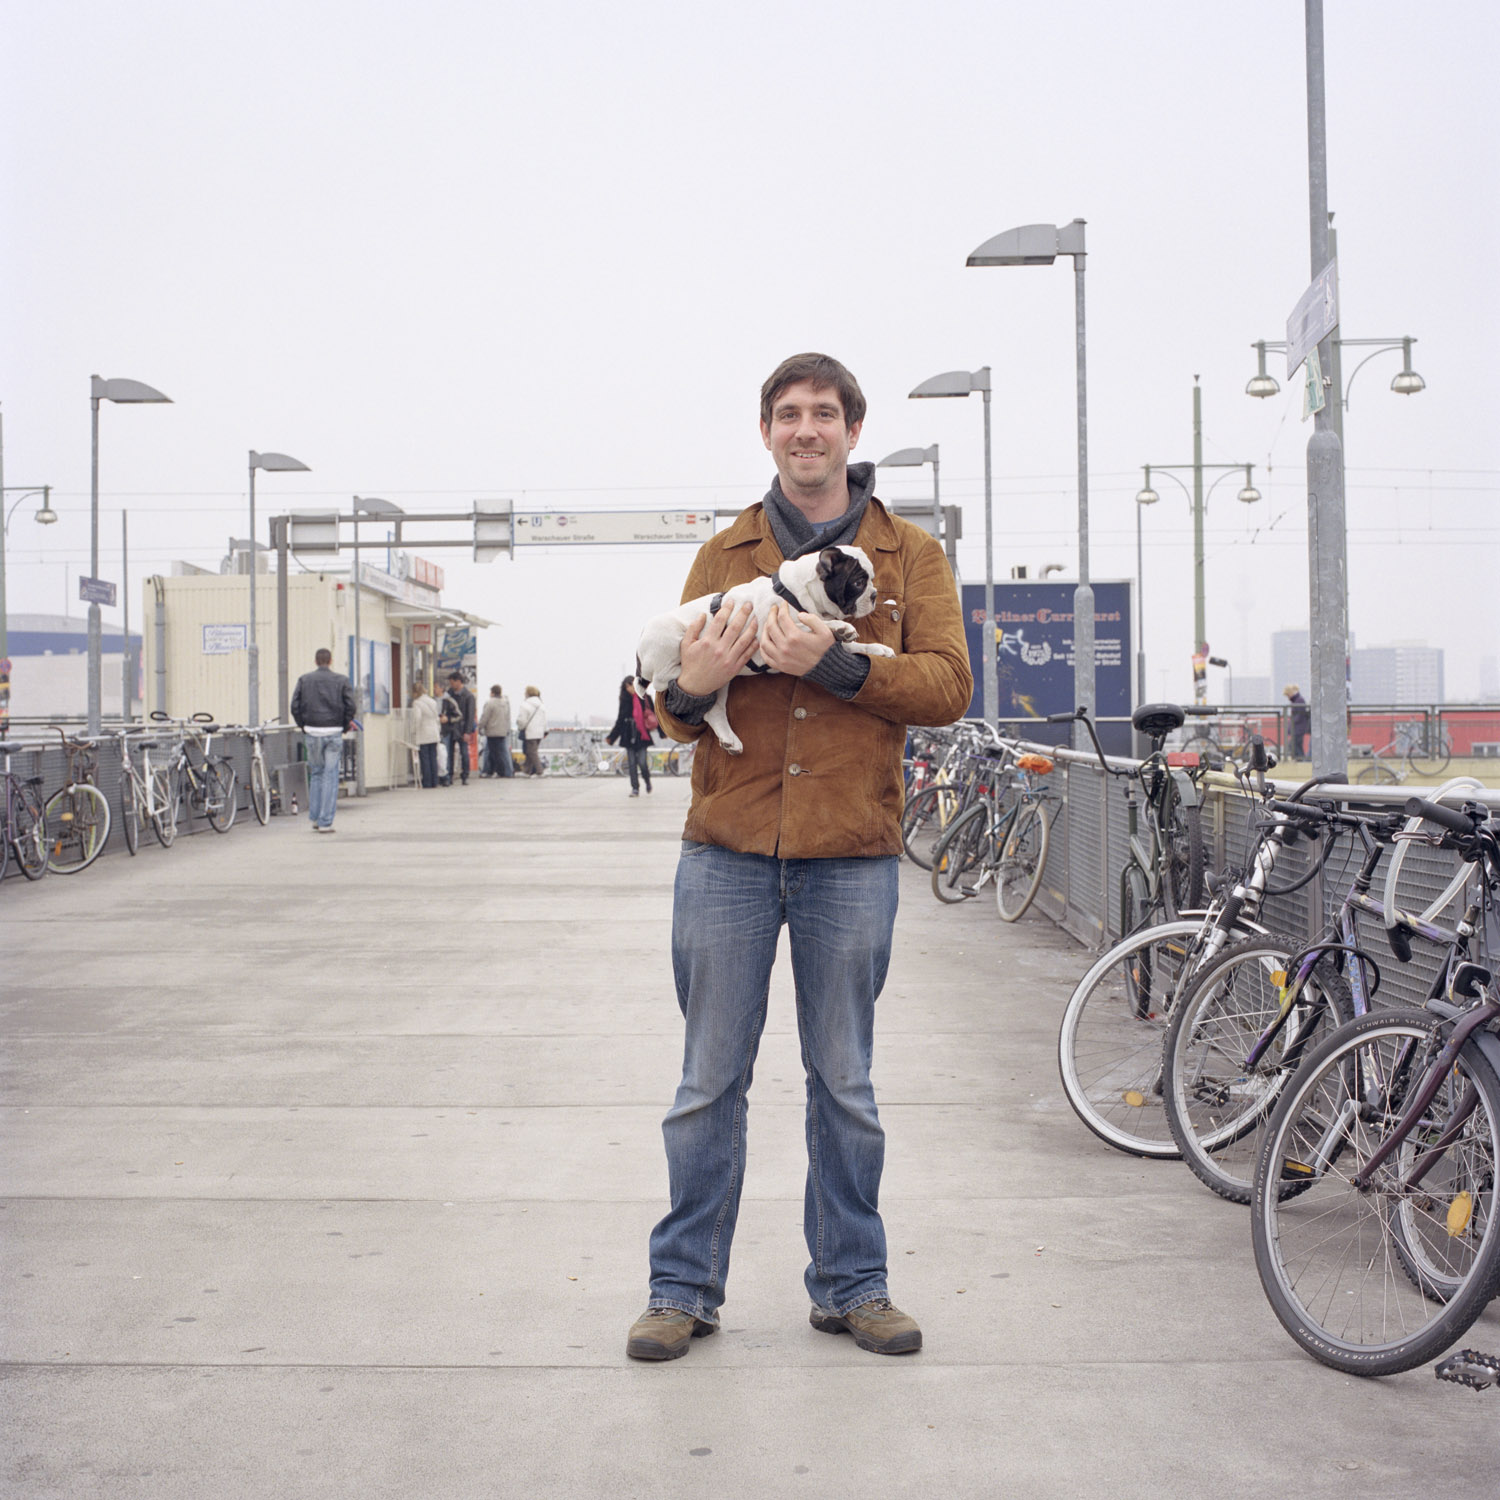 Joerg And Donnie, 2008, From Berlin Project By Abby Storey